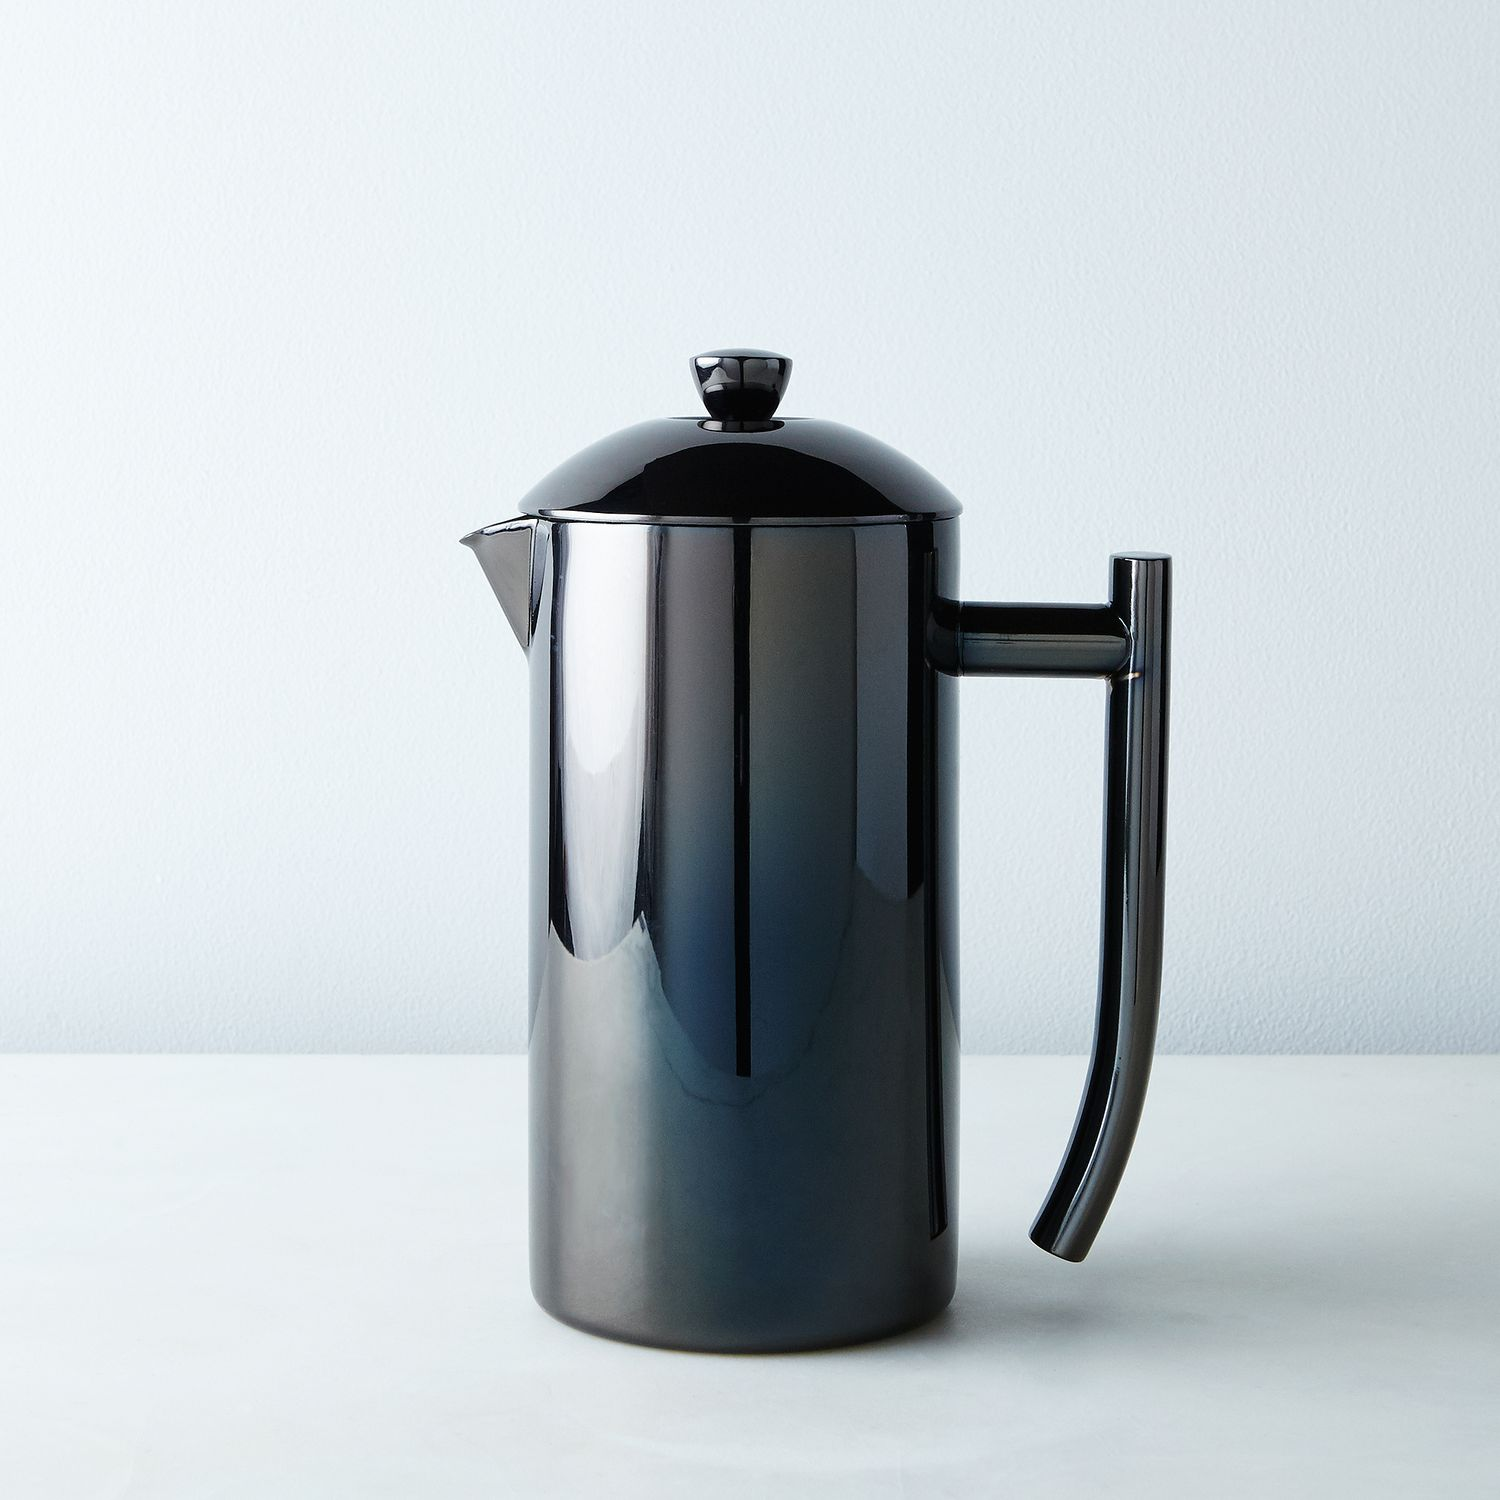 Best French Press Coffee Maker Cooks Illustrated : Black Double-Walled French Press on Food52